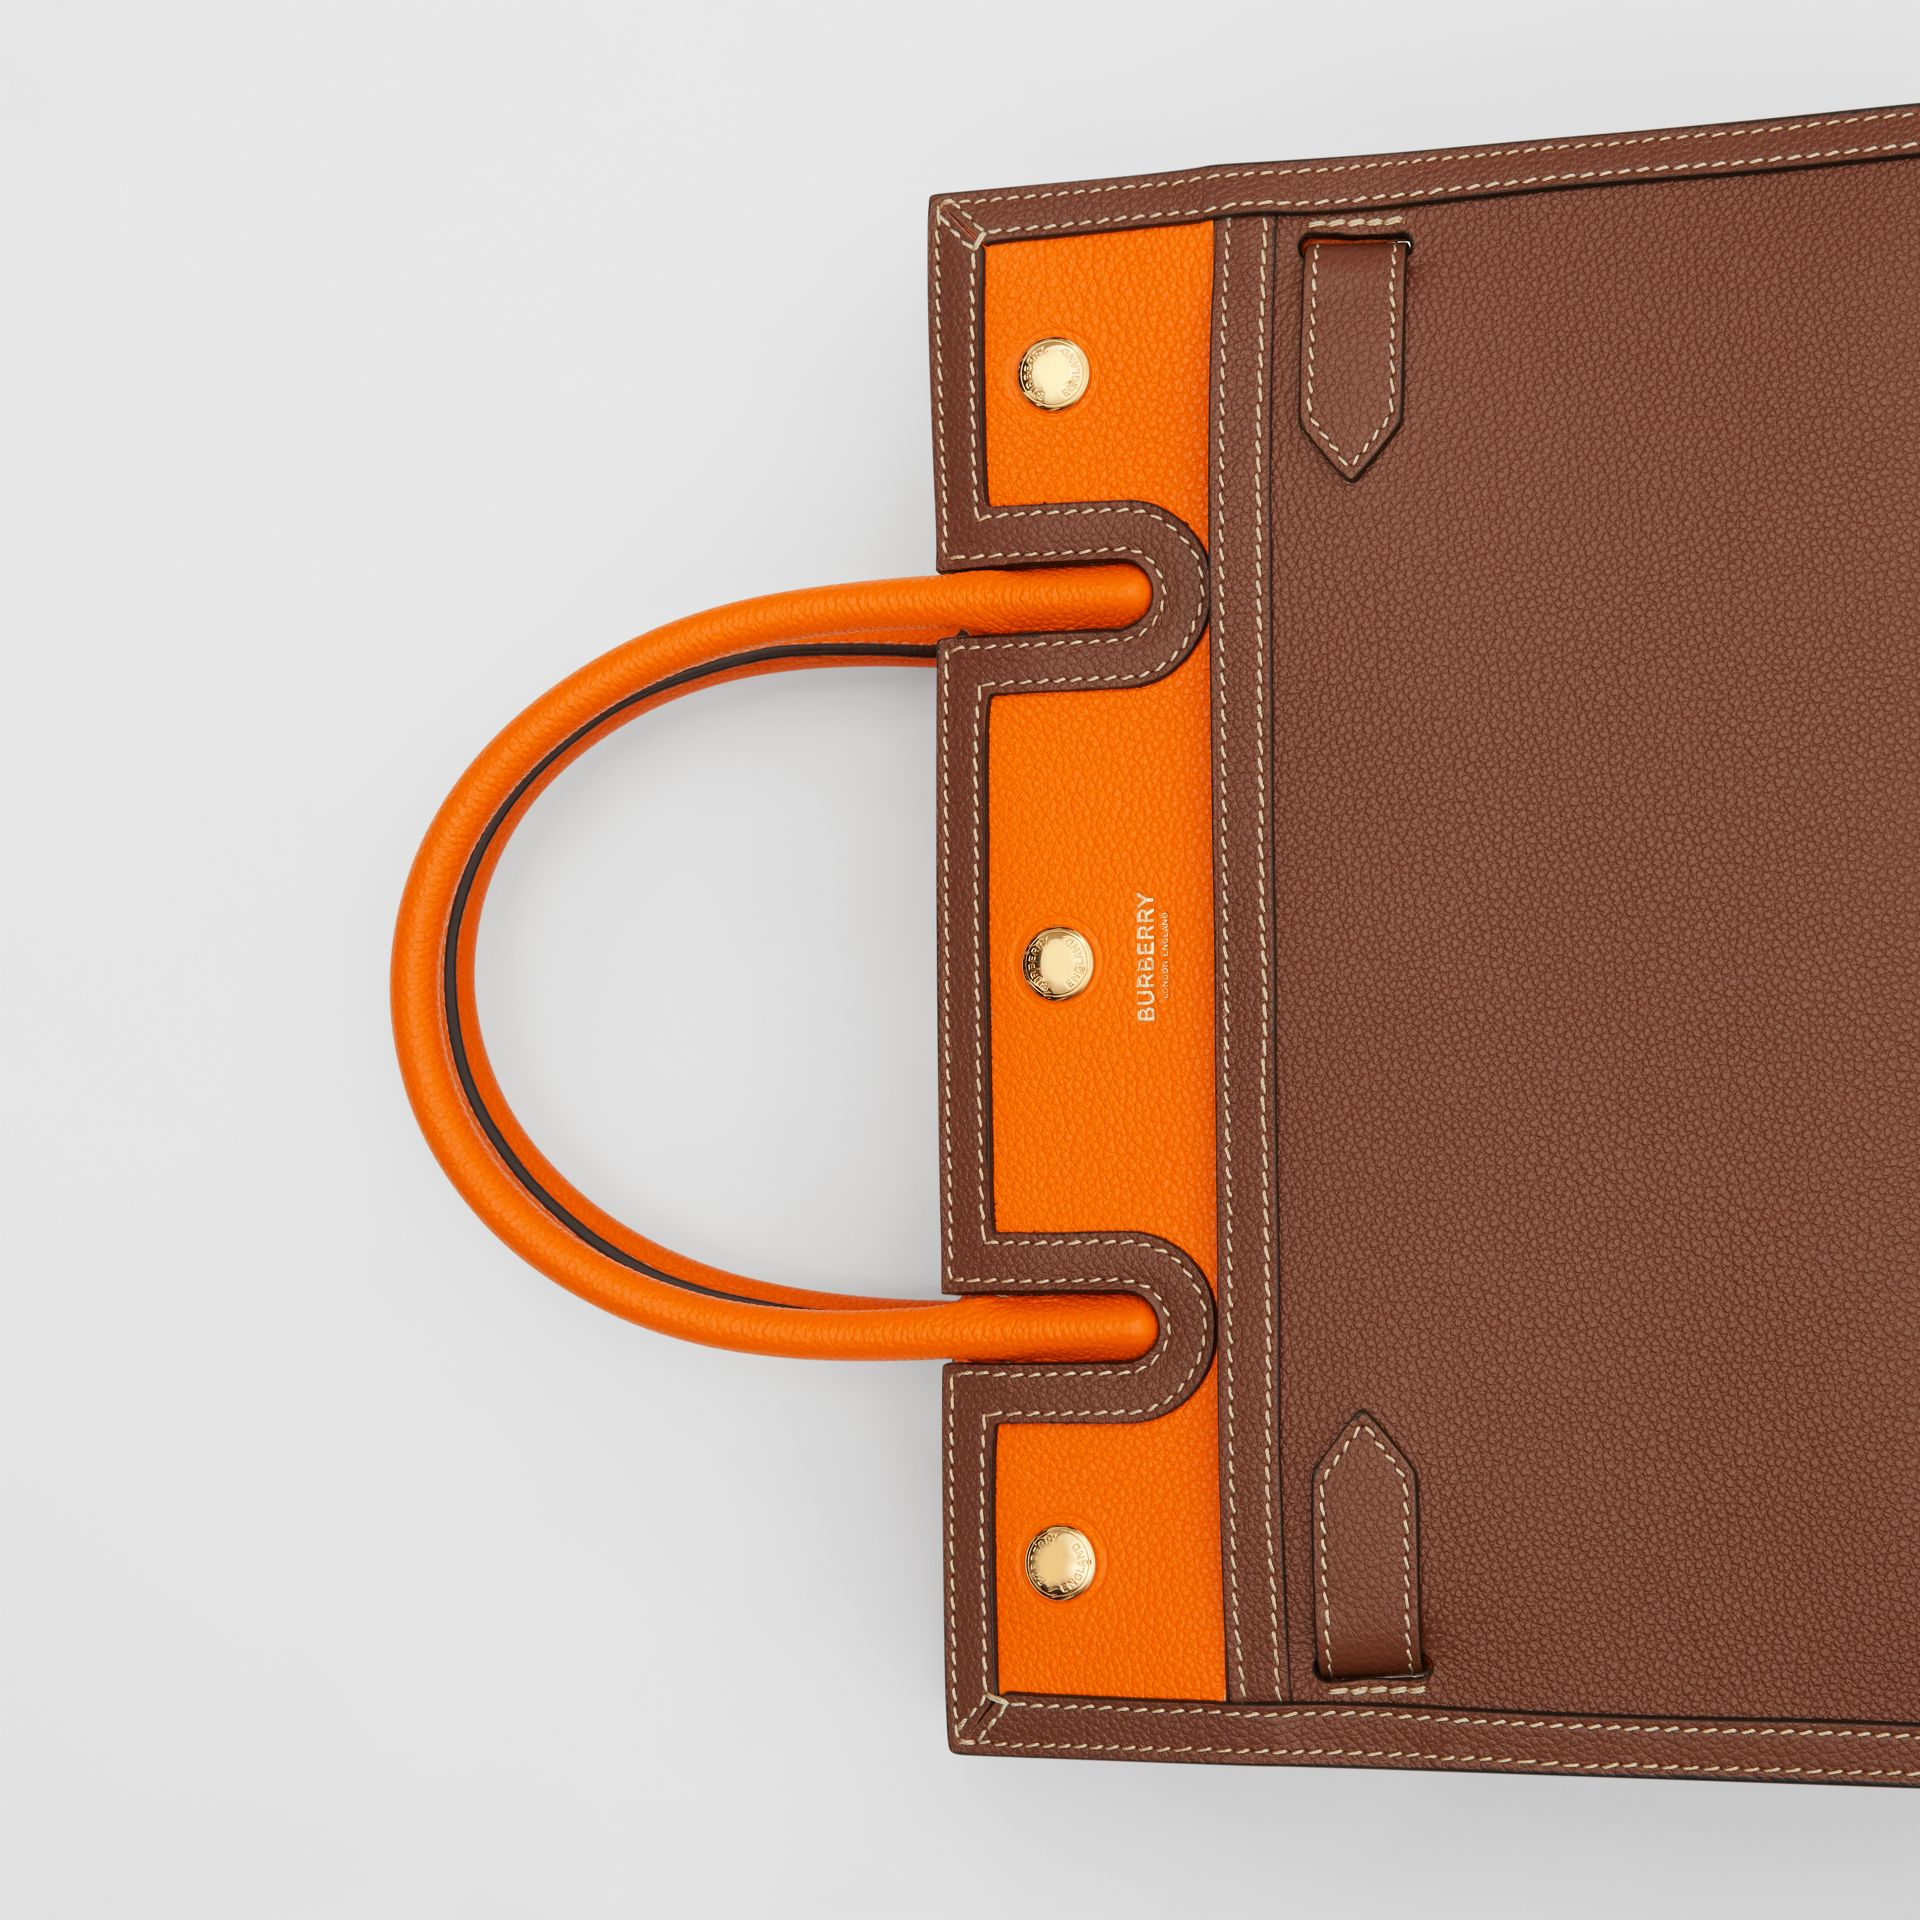 Small Leather Two-handle Title Bag in Tan/bright Orange - Women | Burberry Canada - gallery image 1